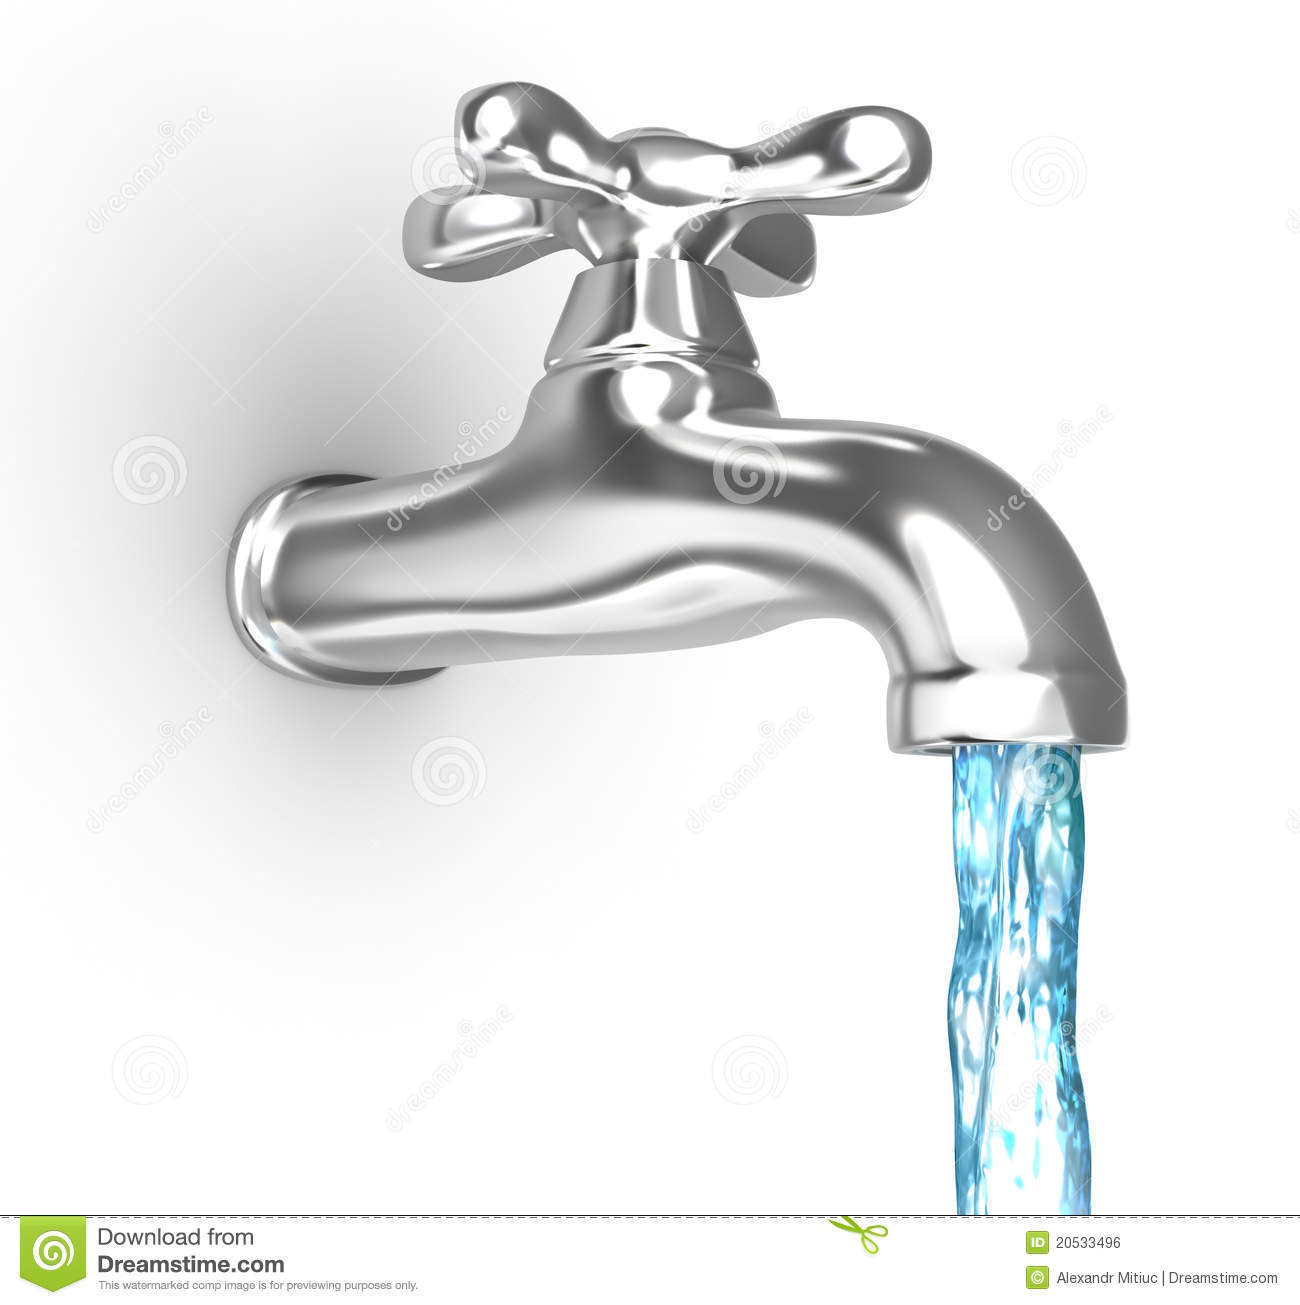 chrome tap with a water stream royalty free stock image free bus clipart images free clipart bus stop